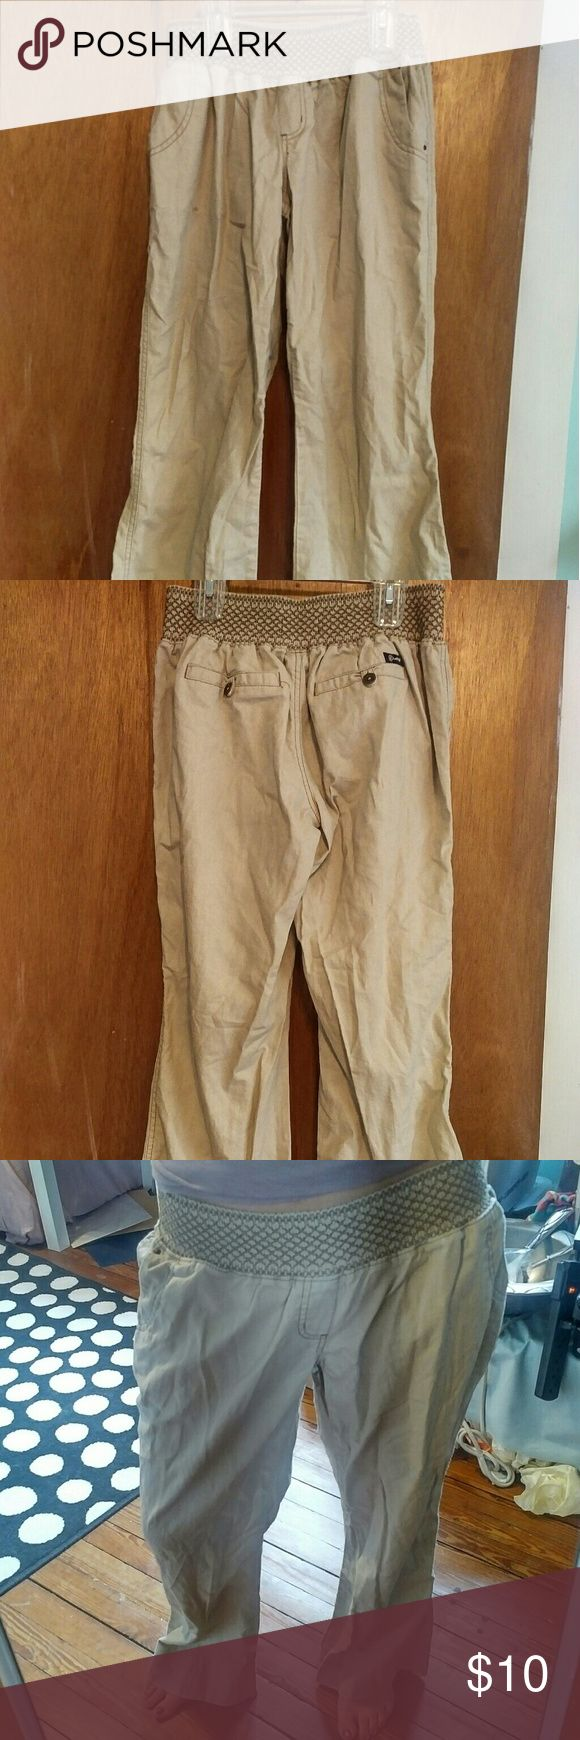 KHAKI COLORED, VERY COMFORTABLE PANTS, size L KHAKI COLORED, VERY COMFORTABLE PANTS, WITH STRETCHY WAIST BAND, FROM MACYS. *OBVIOUSLY IN DESPERATE NEED OF IRONING!! **will IRON before shipping to buyer!!!!** Pants are SIZE LARGE (I think Juniors). I wear a size 0, so they are REALLY baggy on me, but SUPER COMFORTABLE. I think I wore them once. GREAT CONDITION. Rewash Pants Trousers